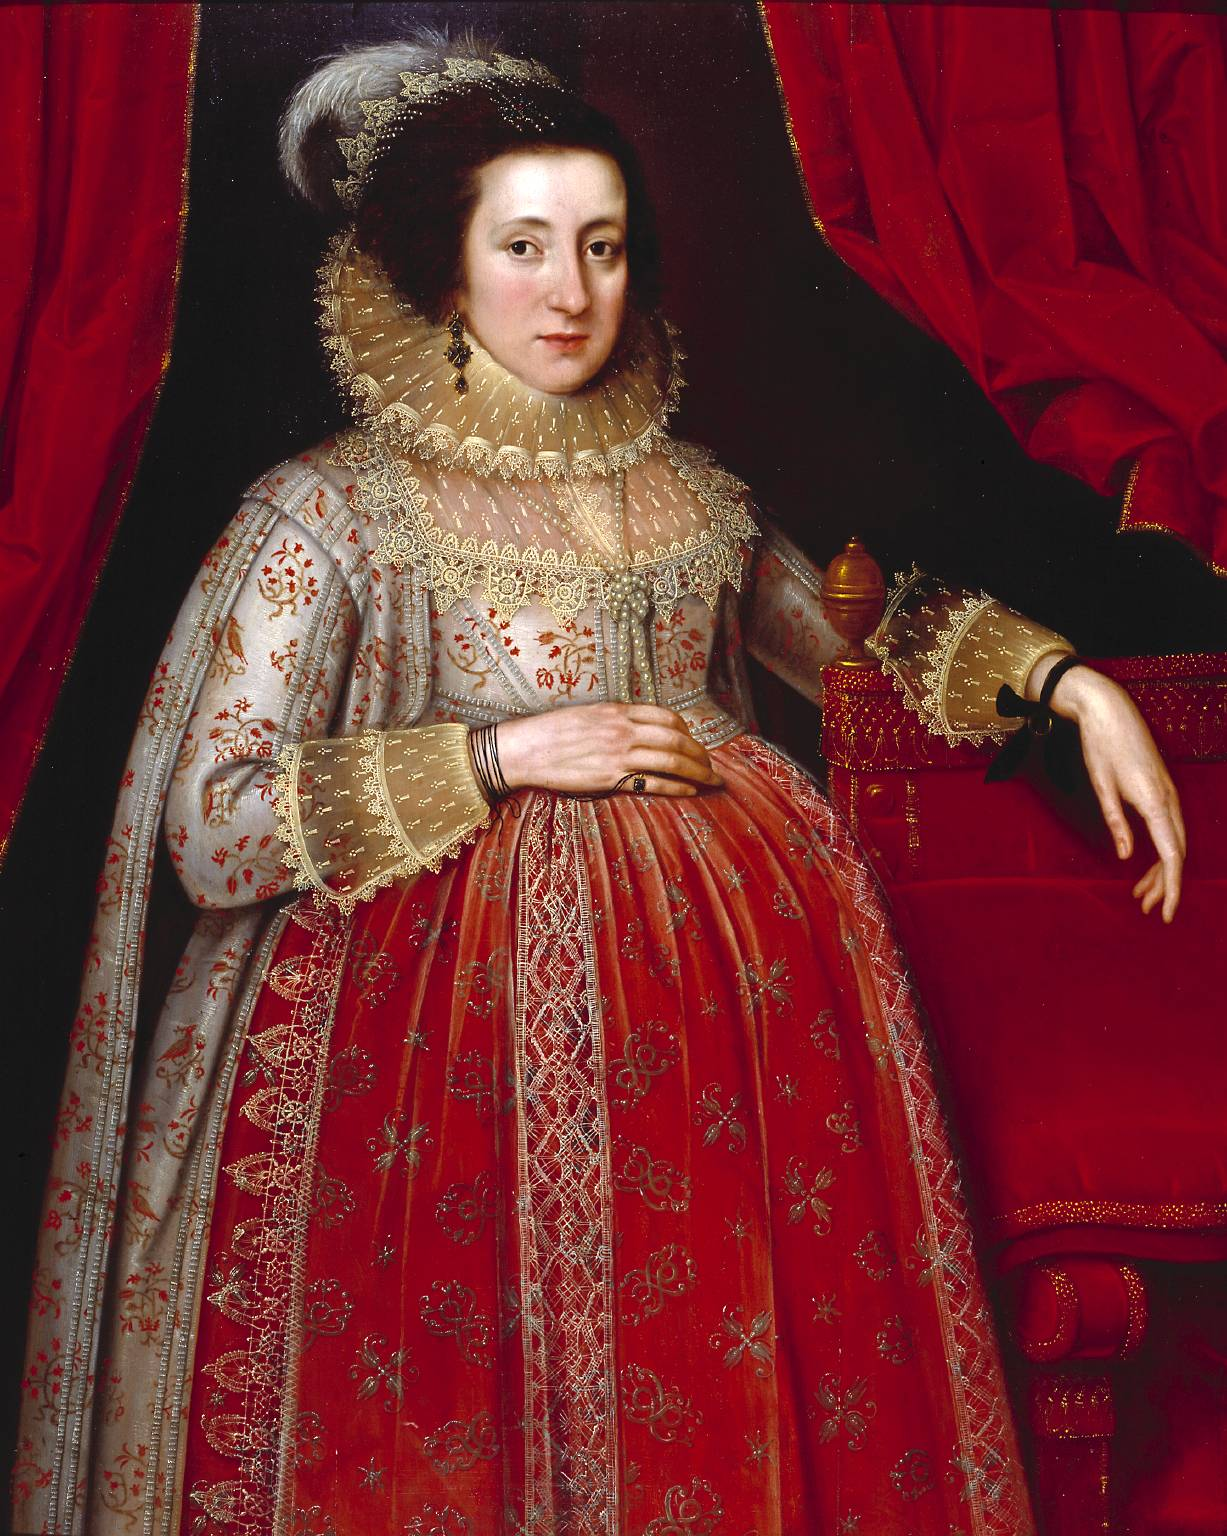 Portrait of a Woman in Red by Marcus Gheeraerts II, 1620 © Tate